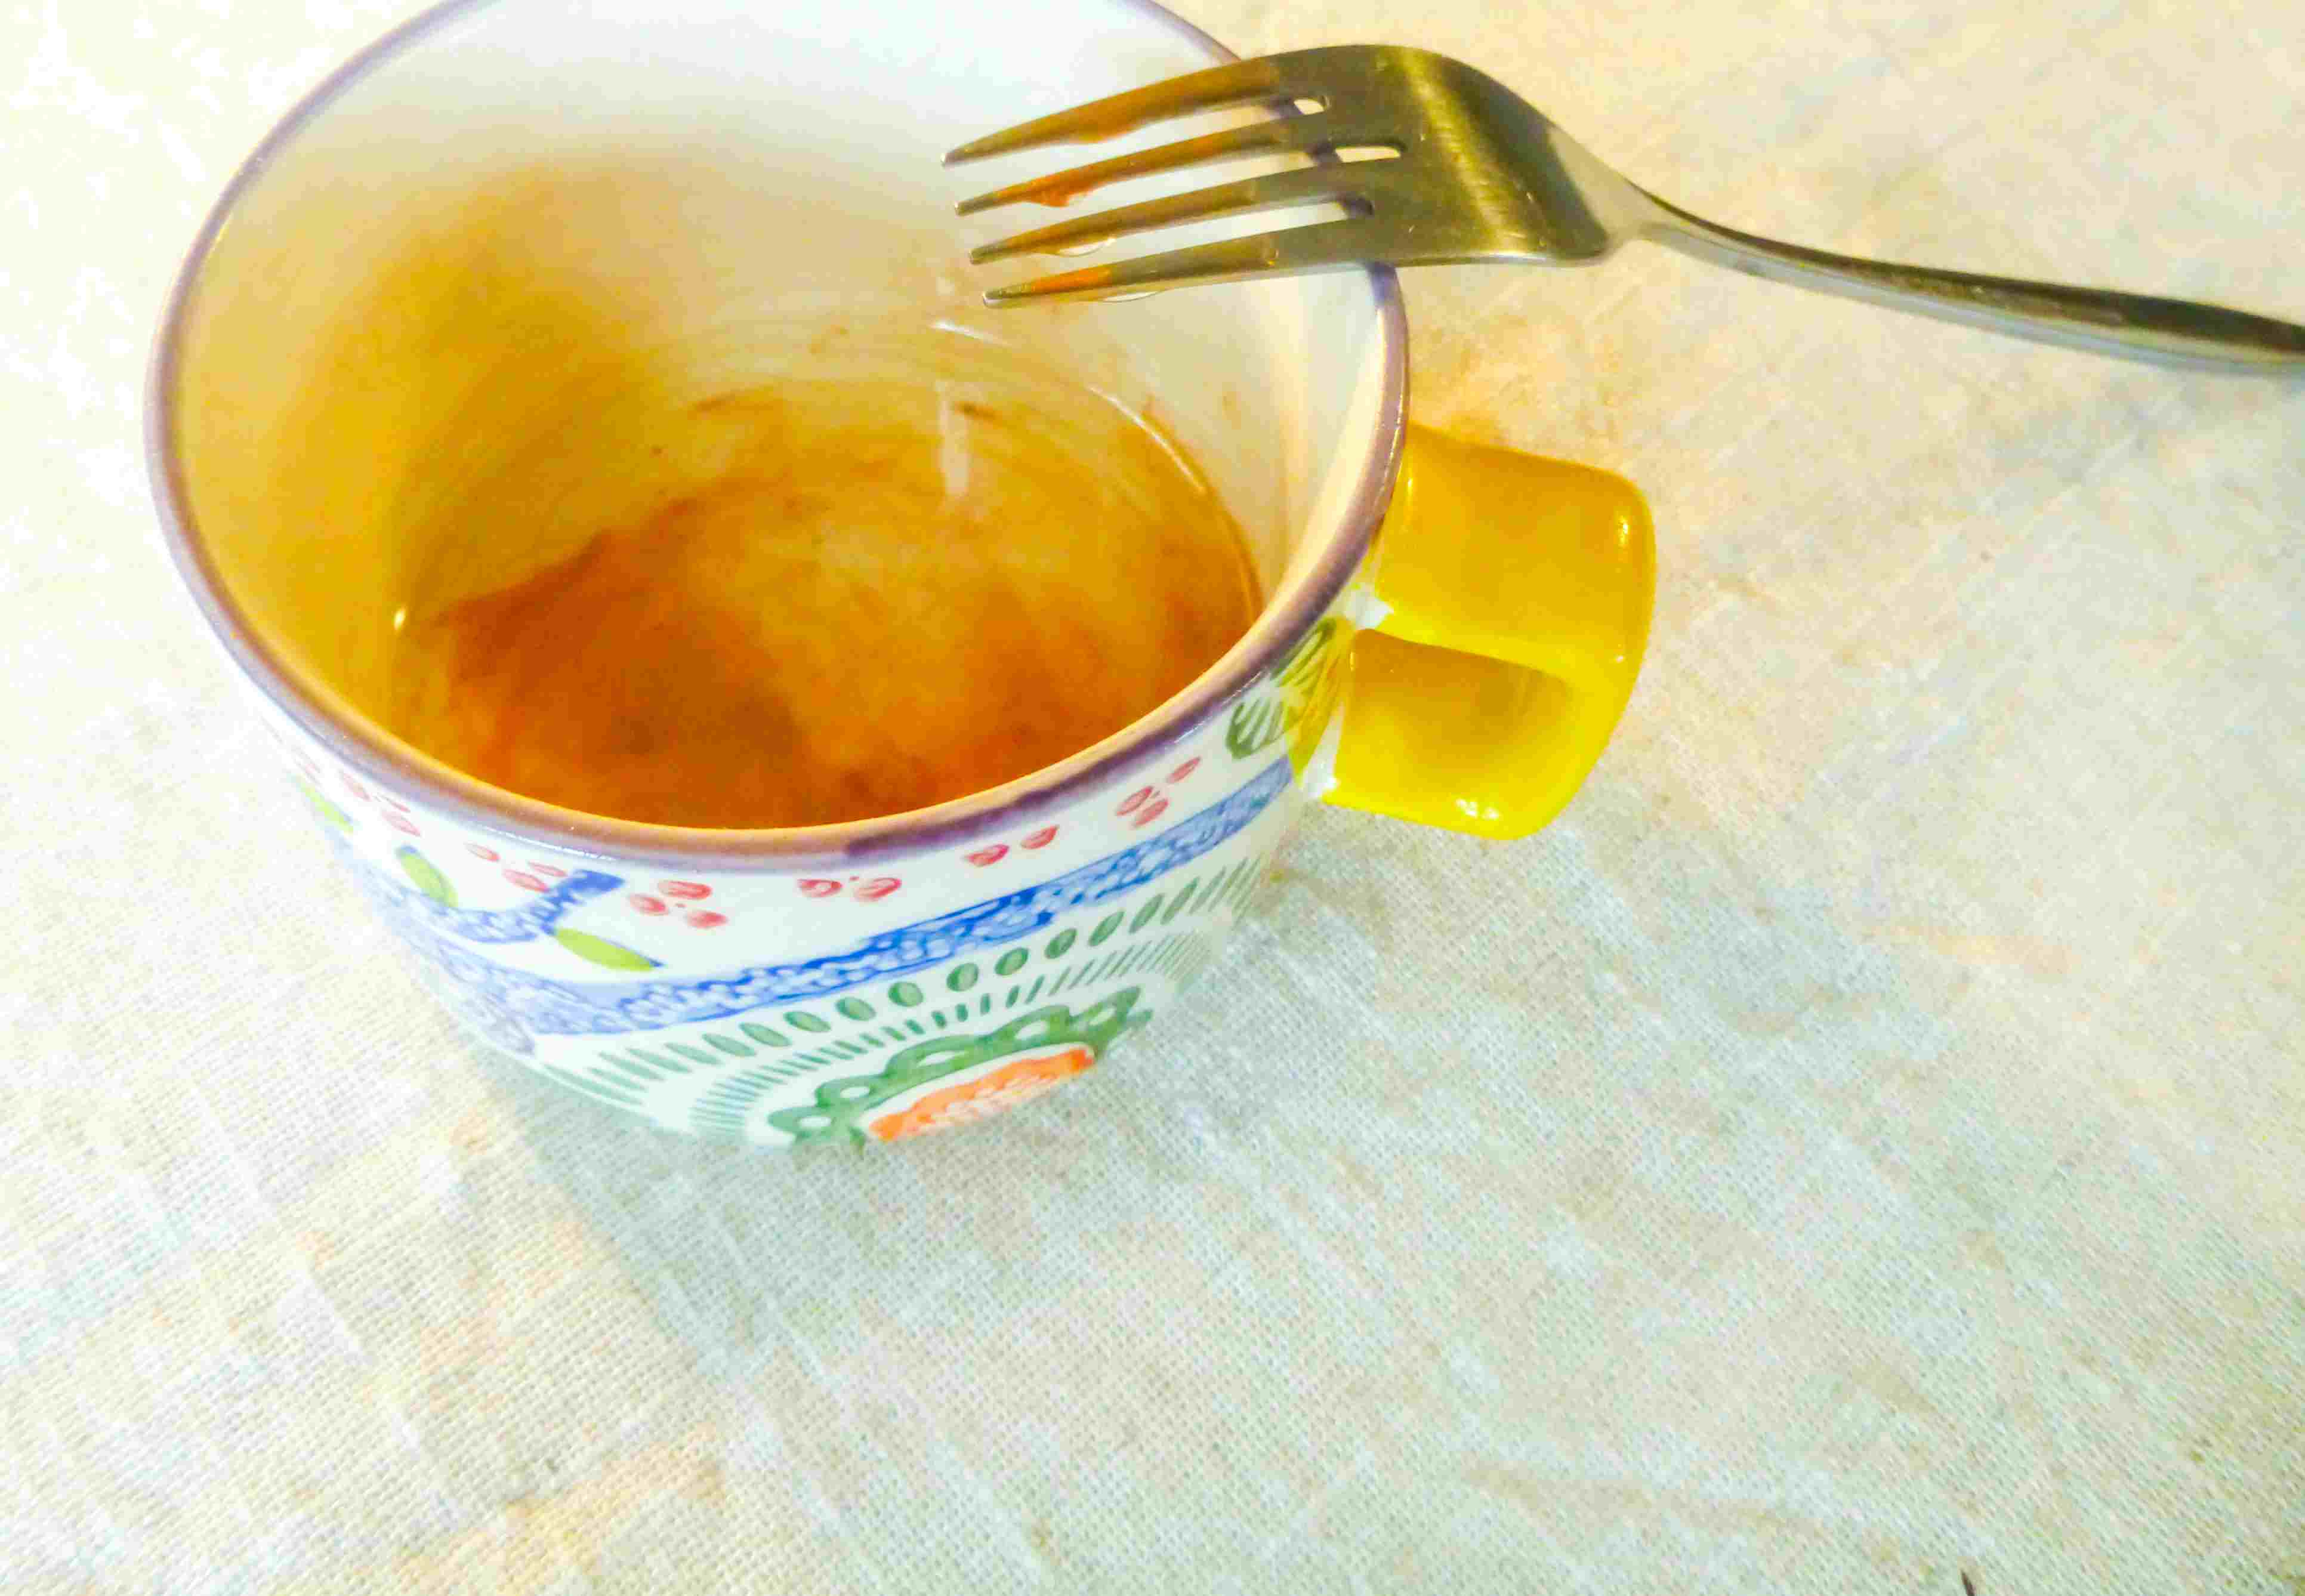 Melted micas with oil in a mug